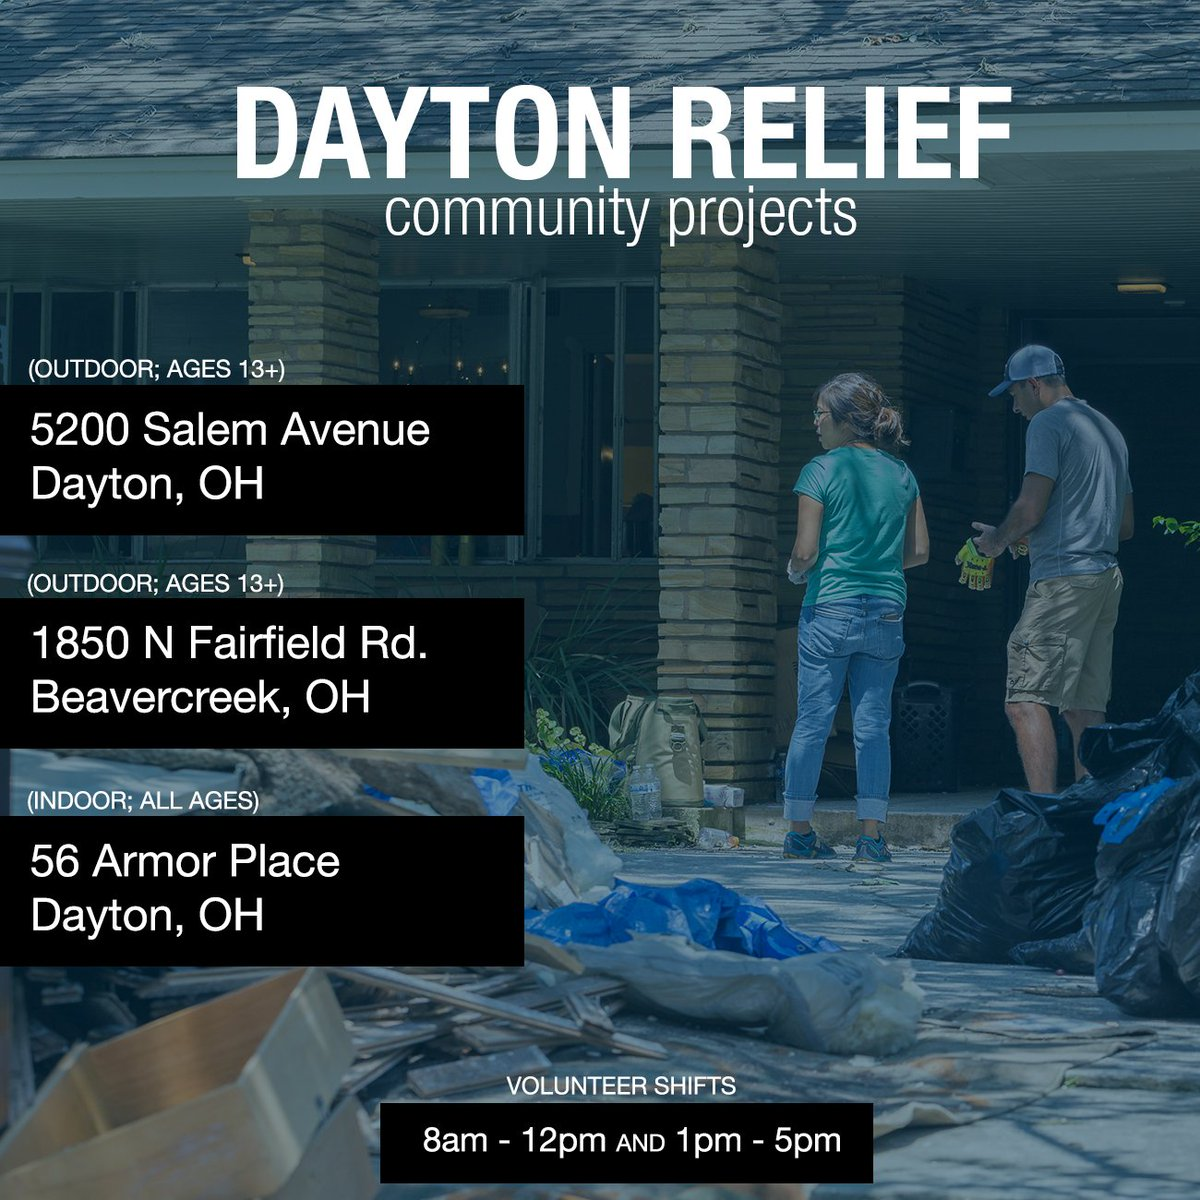 500+ people in our community are mobilizing around Dayton on Saturday to help with relief efforts. If you're interested in joining, please show up at one of these locations listed below. There will be two shifts: 8am - 12pm (arrival time 8am) and 1pm - 5pm (arrival time 1pm).